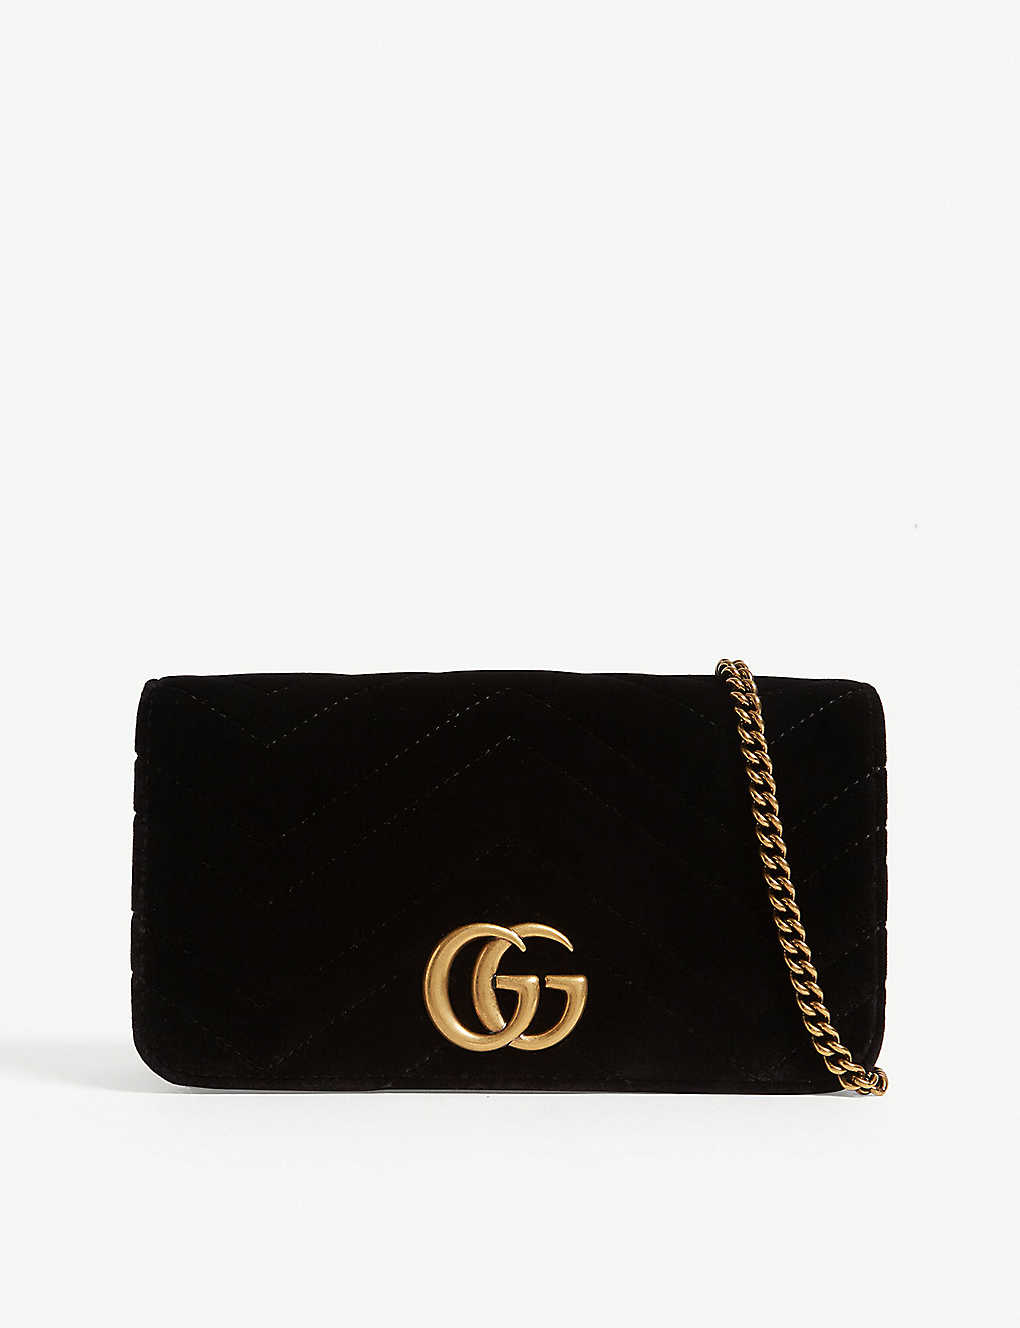 0adf5914b3a GUCCI - Velvet Marmont clutch bag